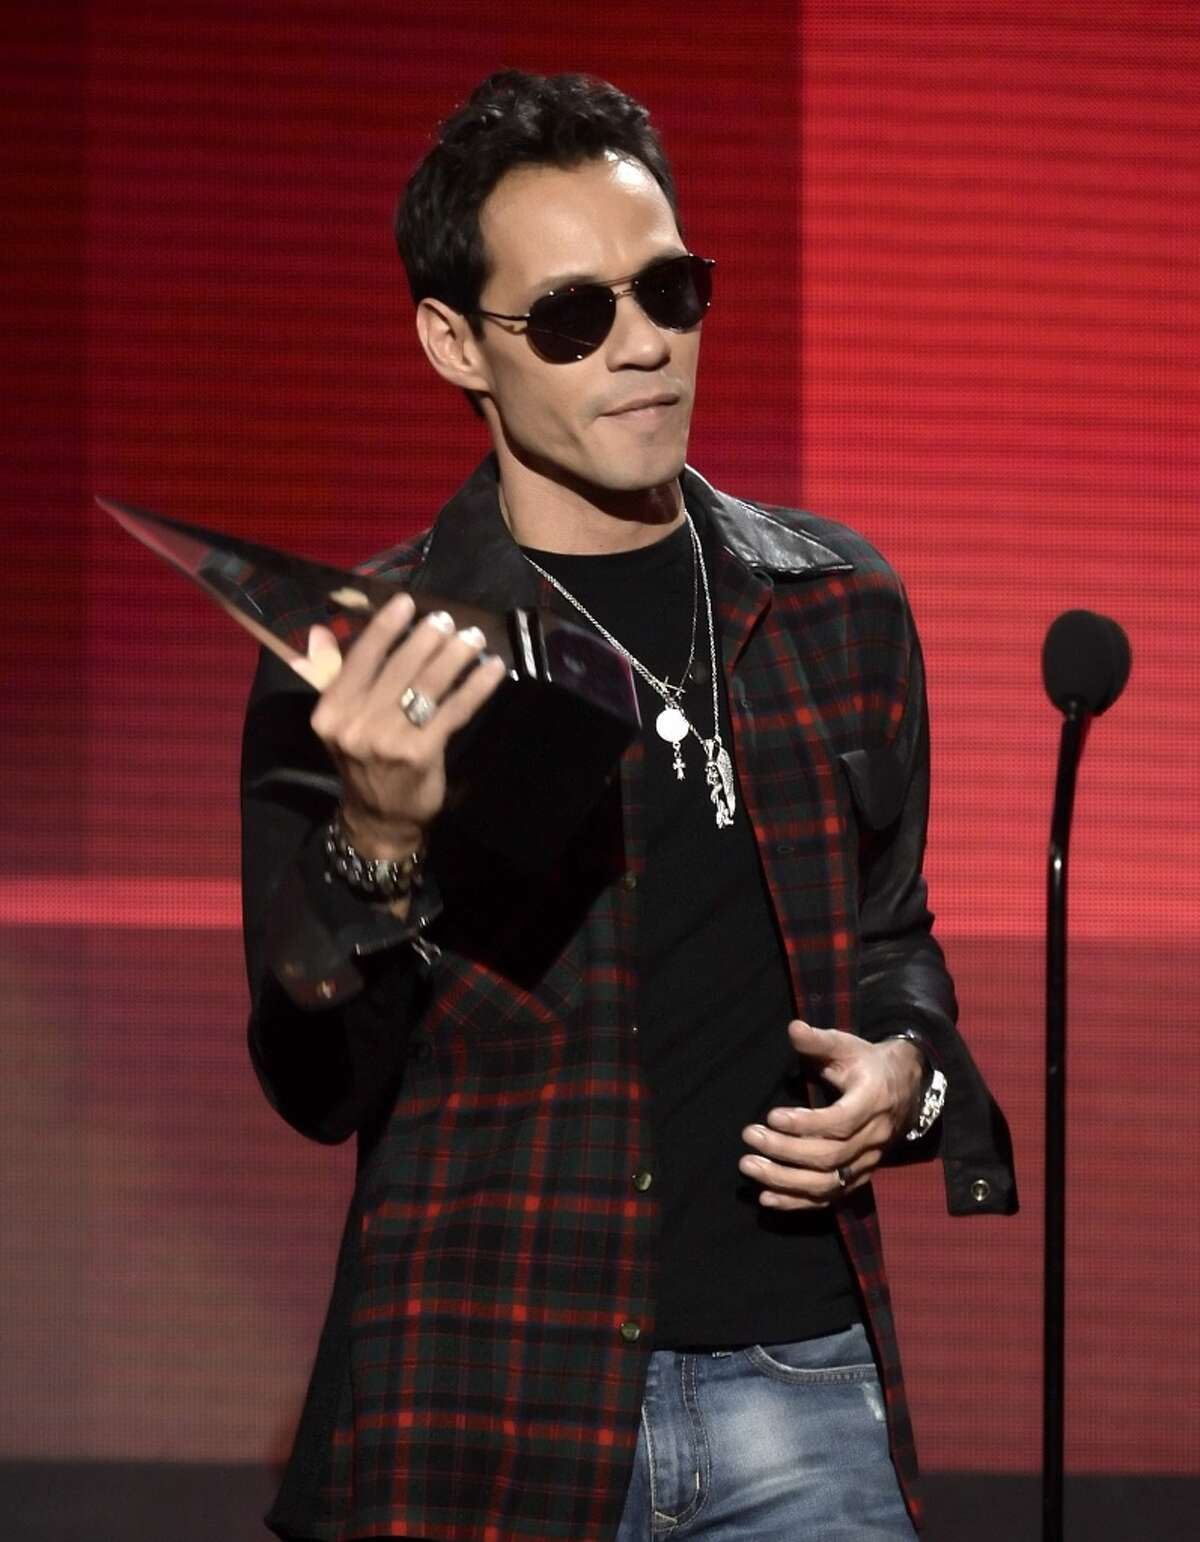 Singer Marc Anthony will perform at Foxwoods on Friday. Find out more.